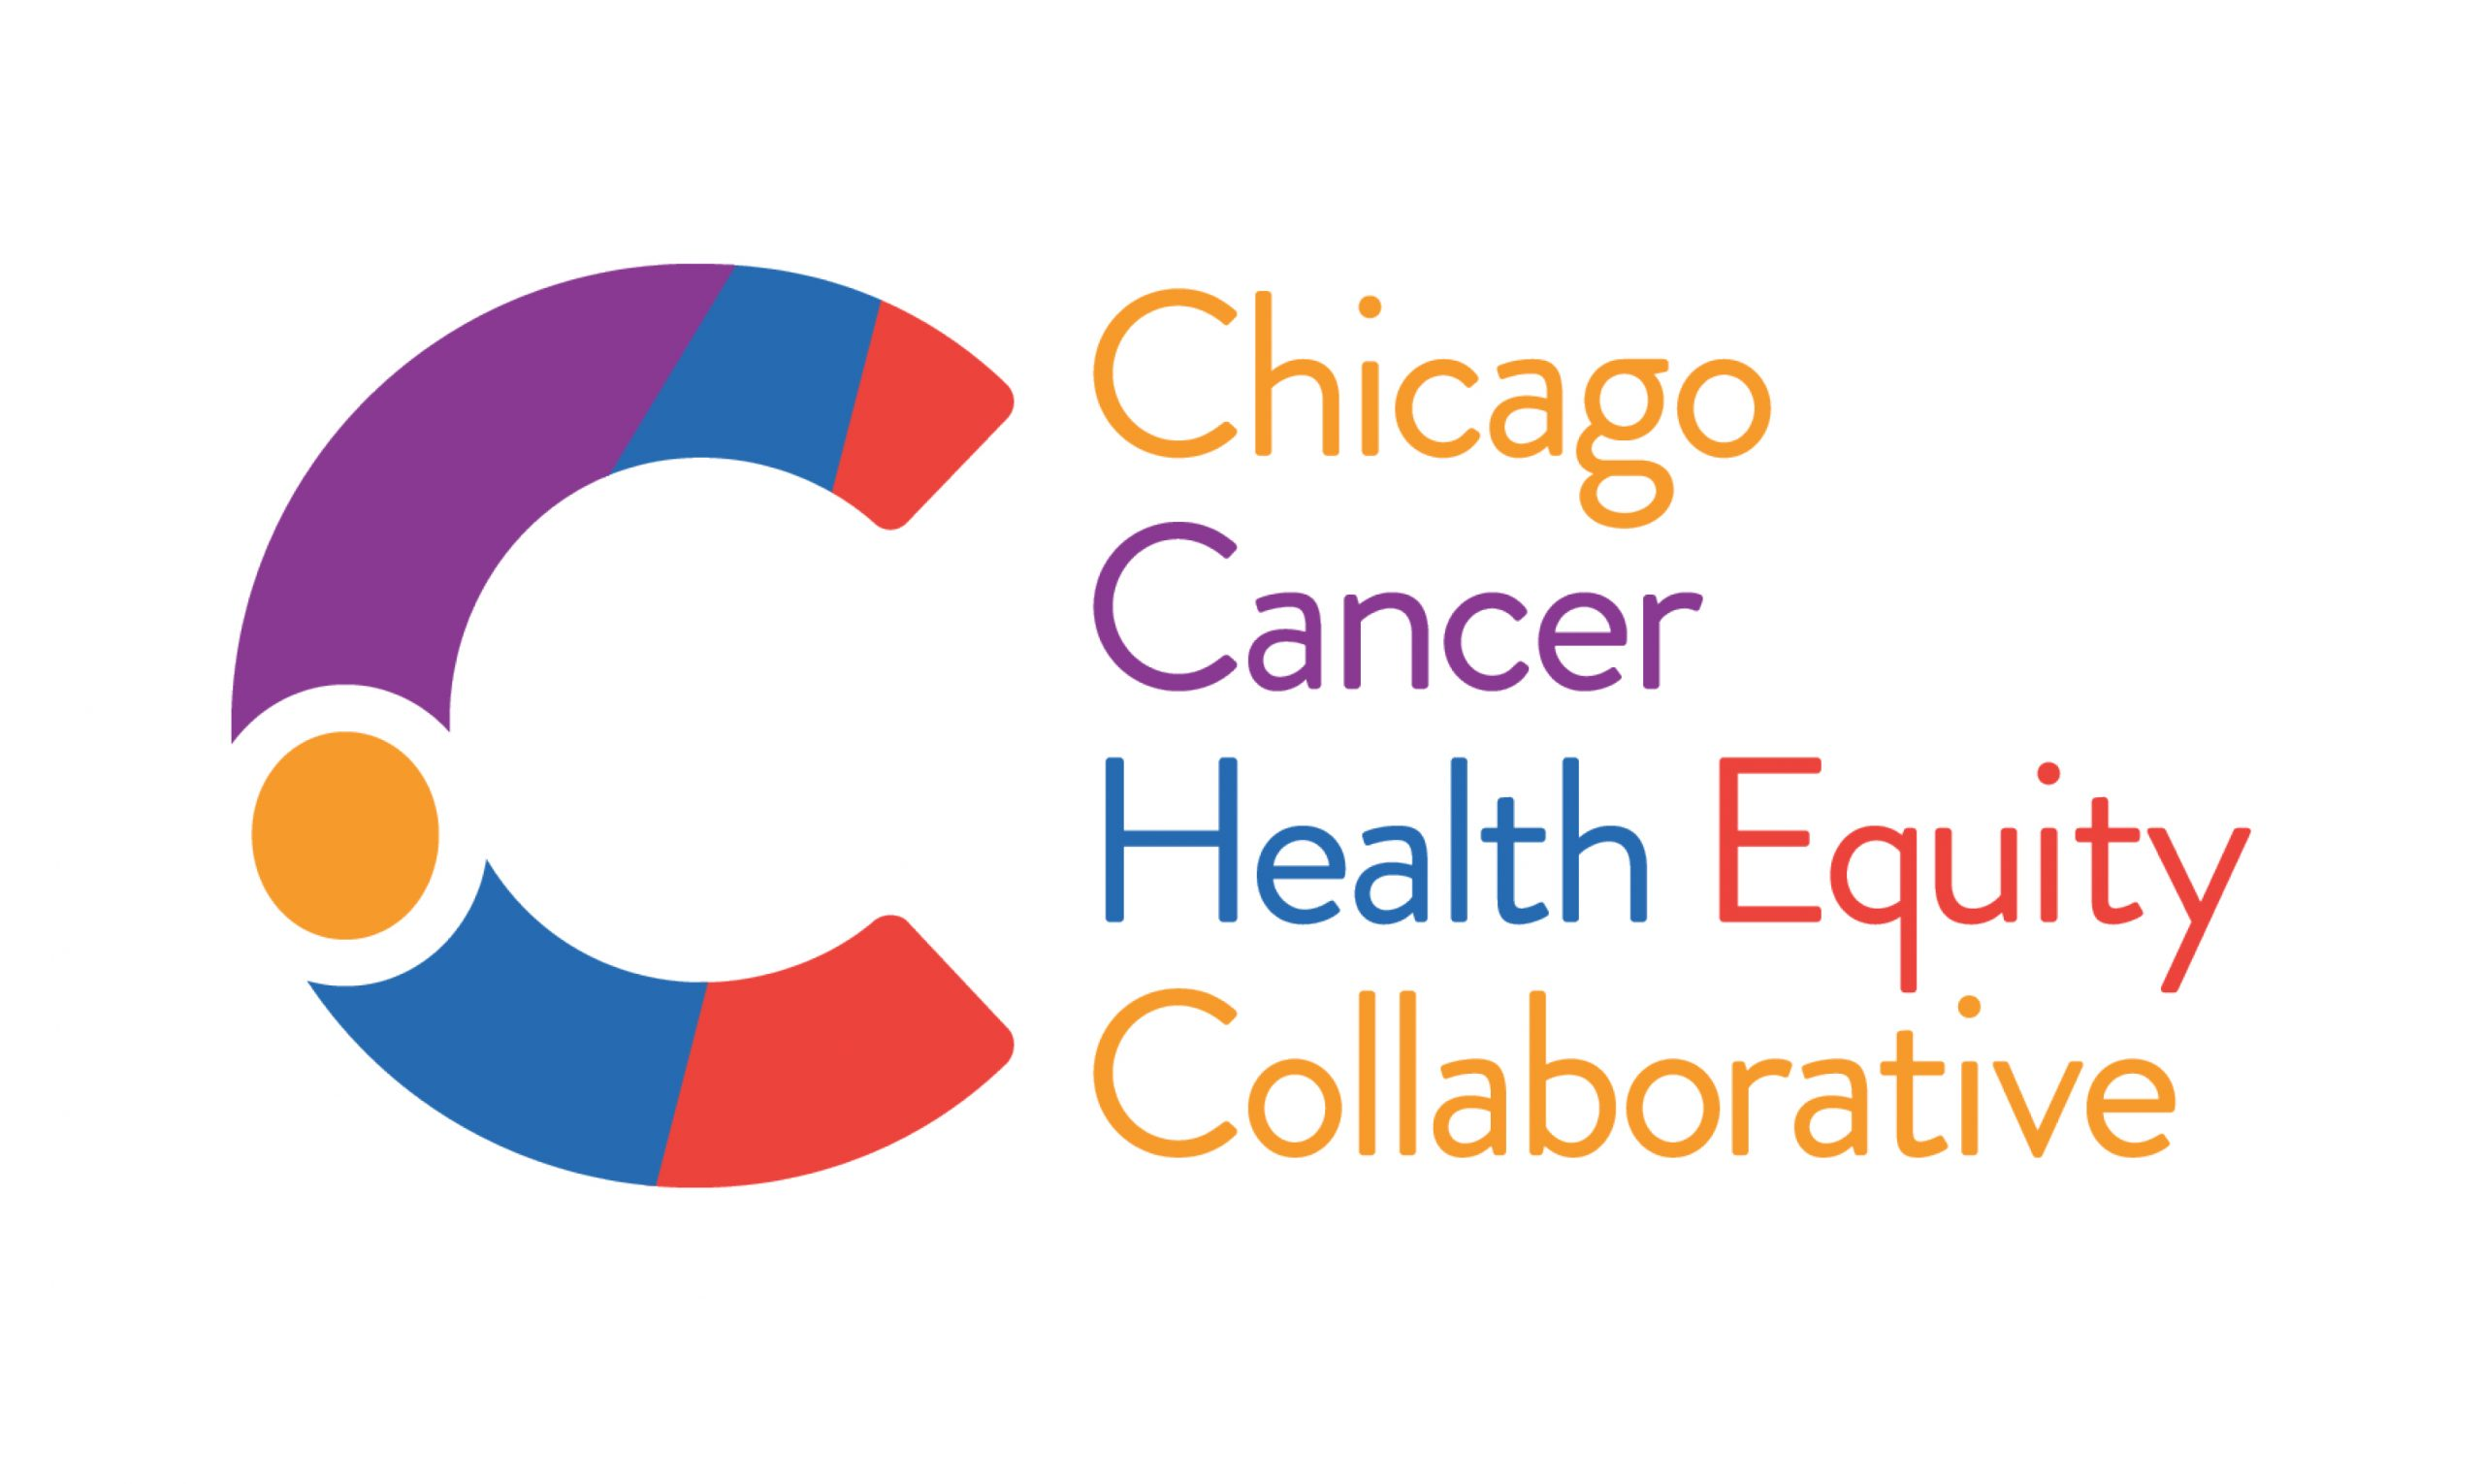 Chicago Cancer Health Equity Collaborative